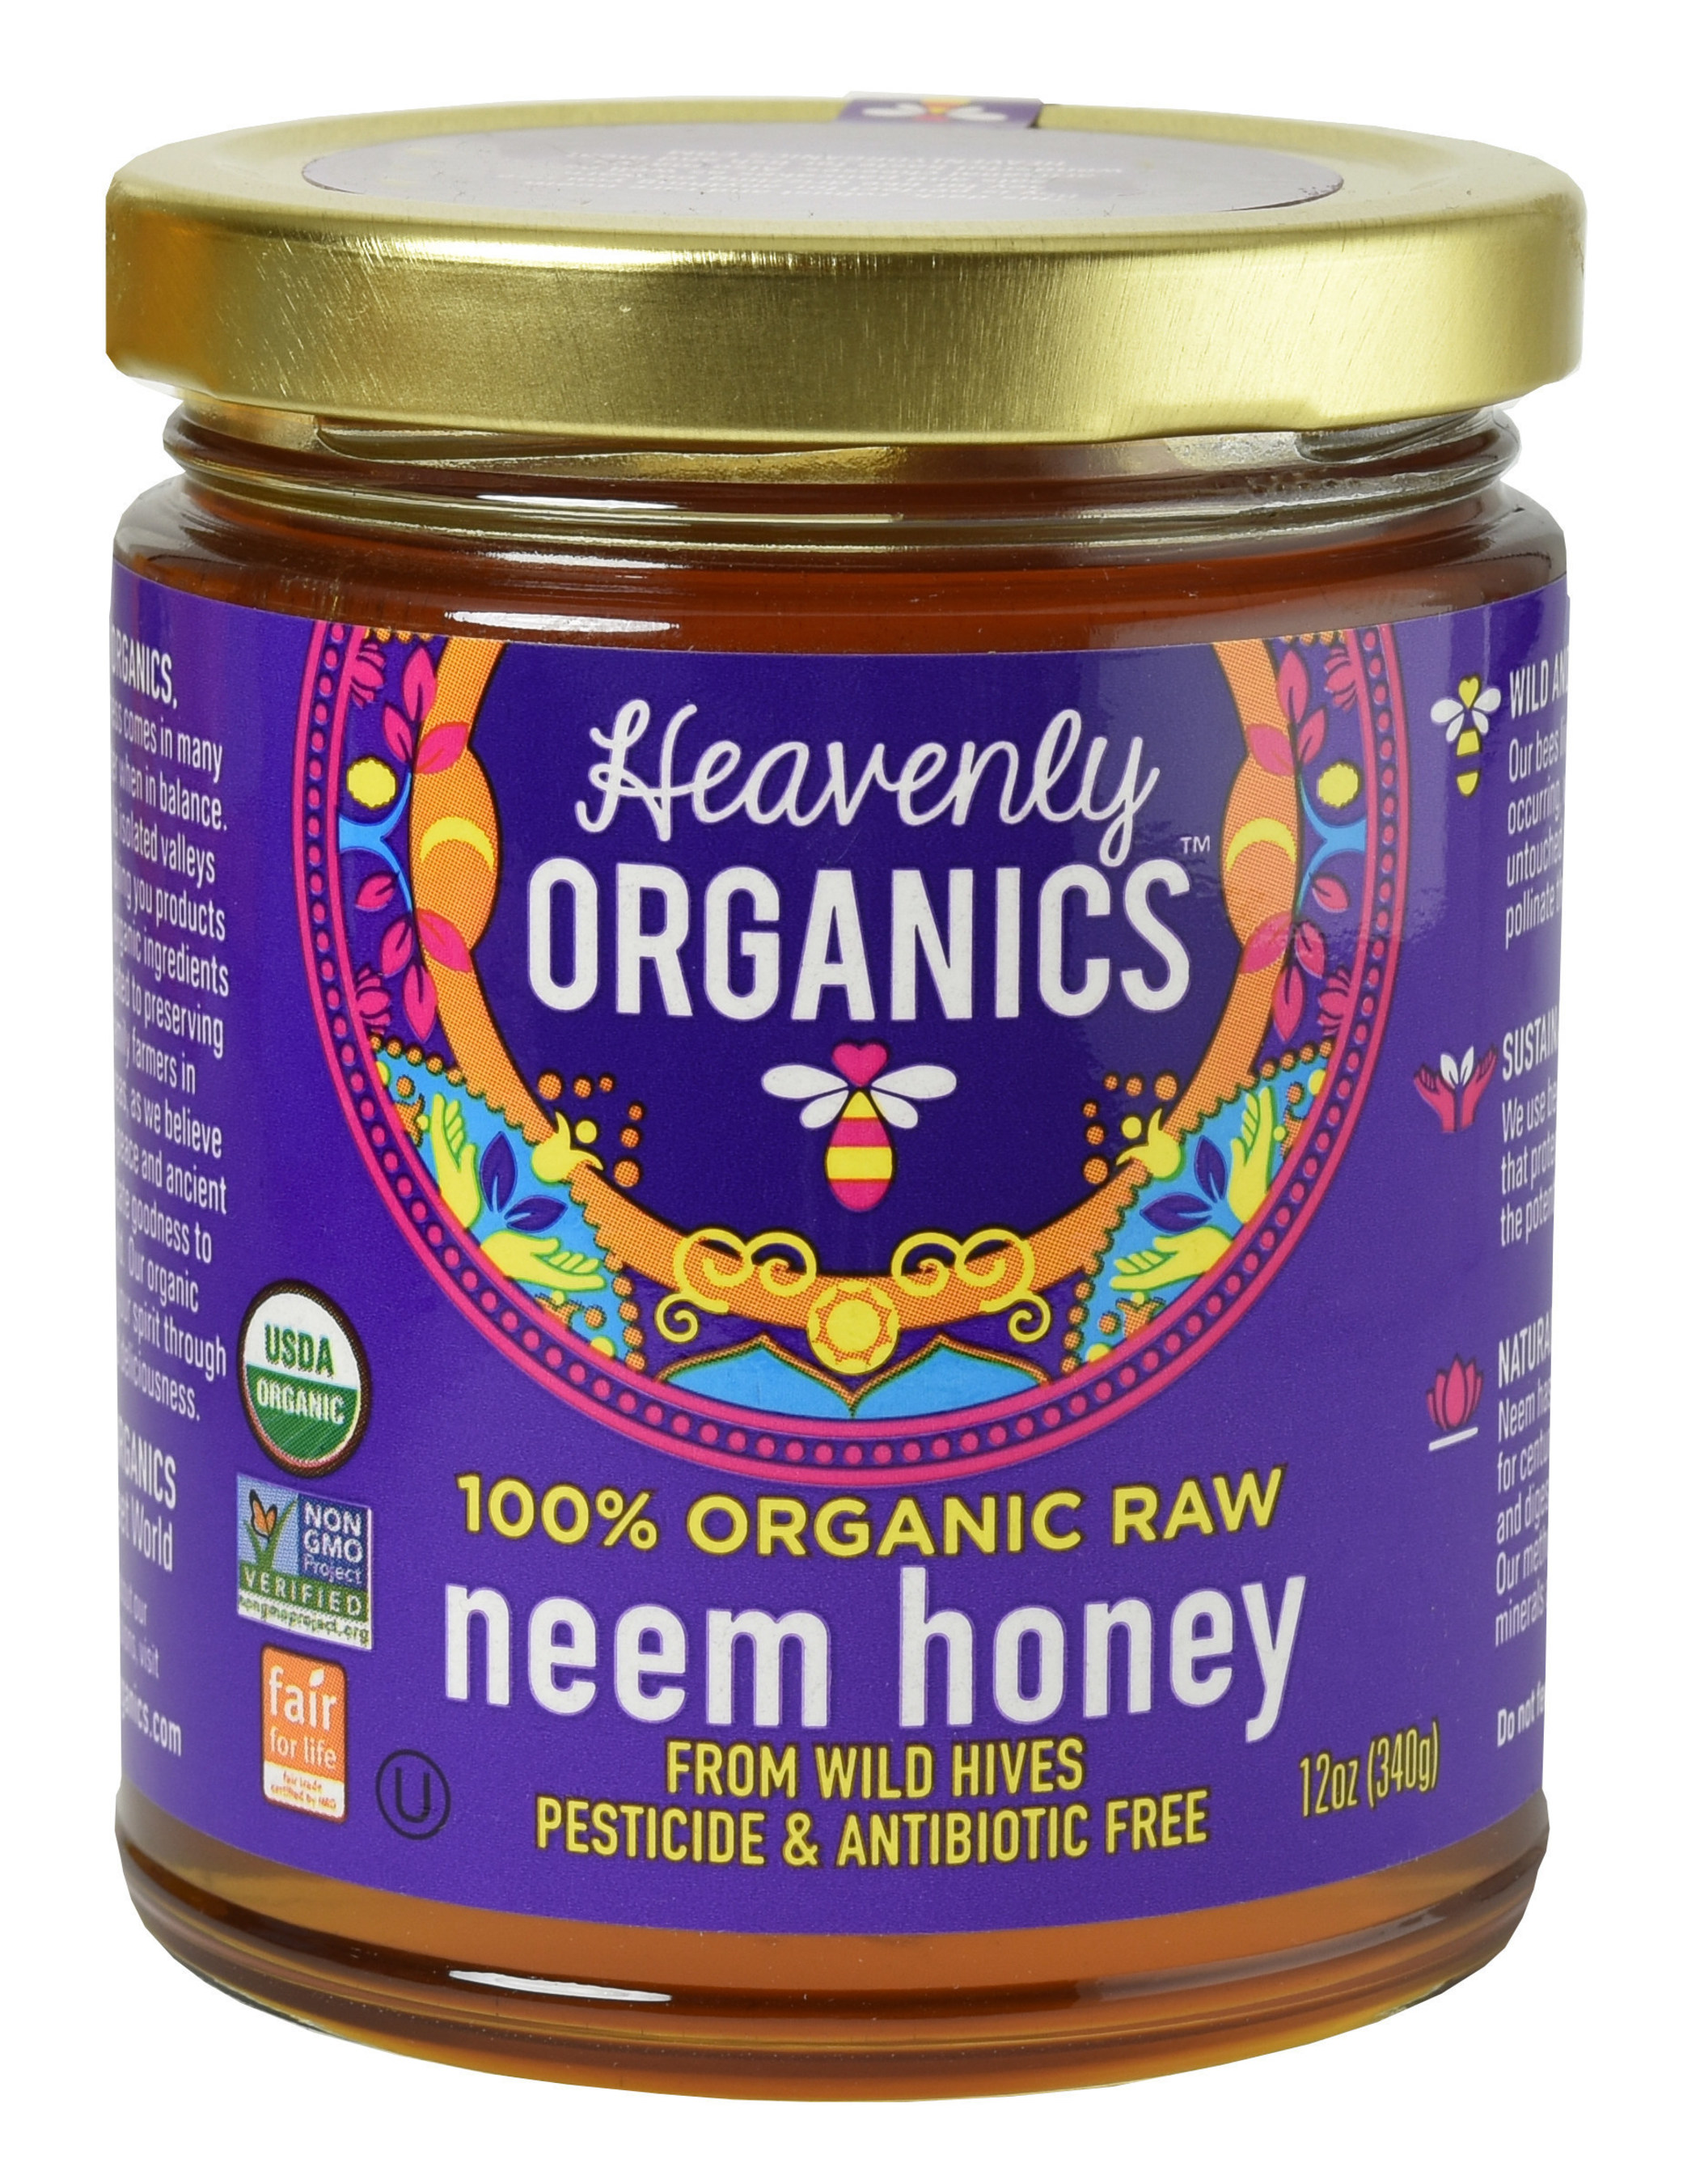 Heavenly Organics 100% Organic, Raw, Pesticide and Antibiotic Free Neem Honey from Wild Beehives